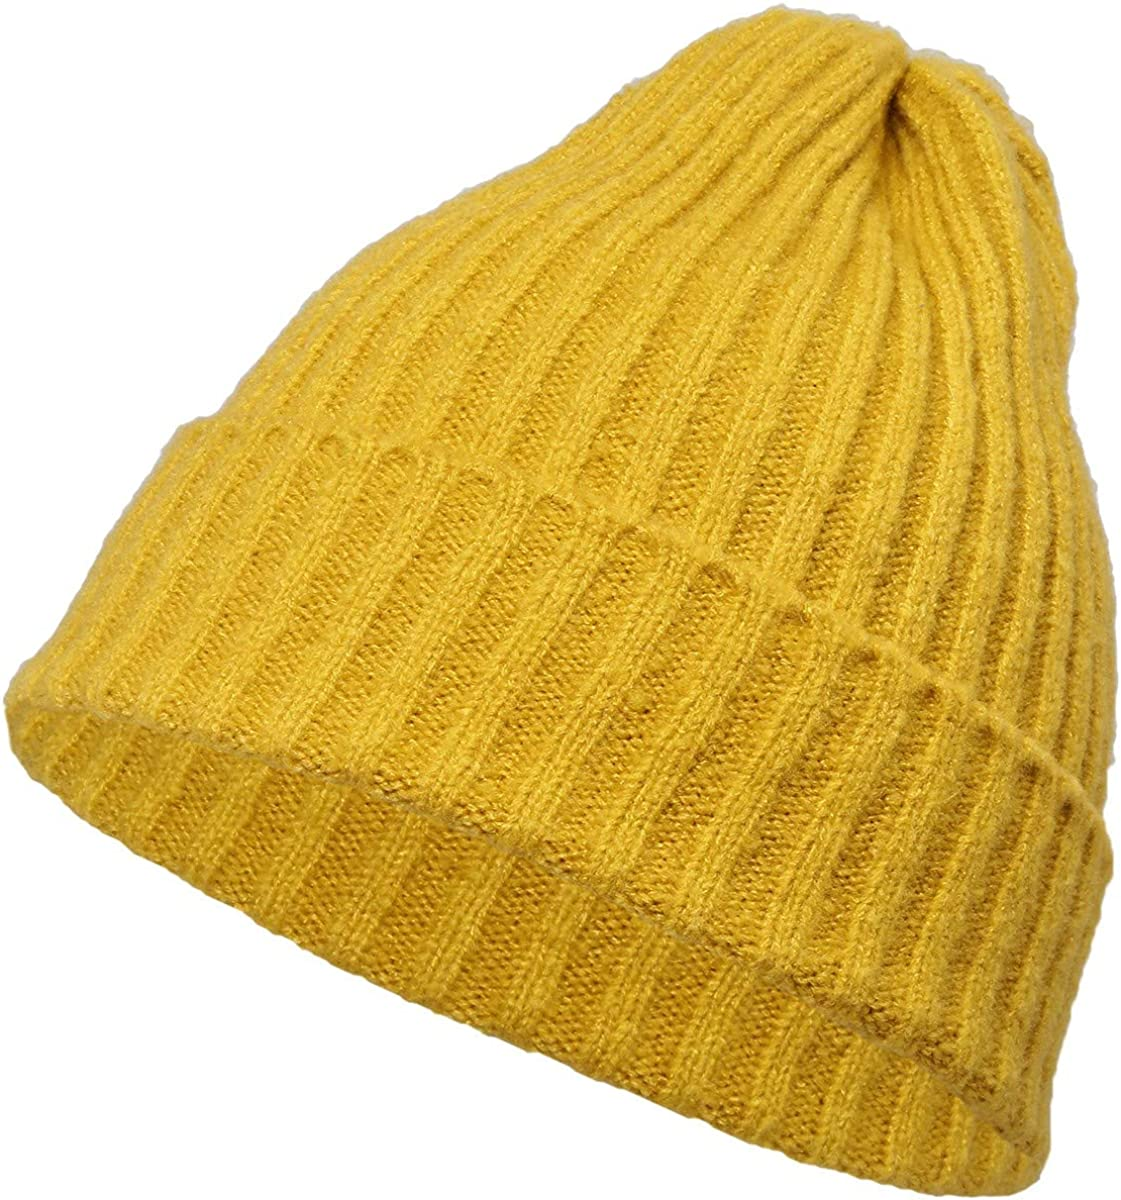 Luxury Samtree Beanie Knit Hat Warm Limited price sale Winter Beanies Daily Skull Slouchy